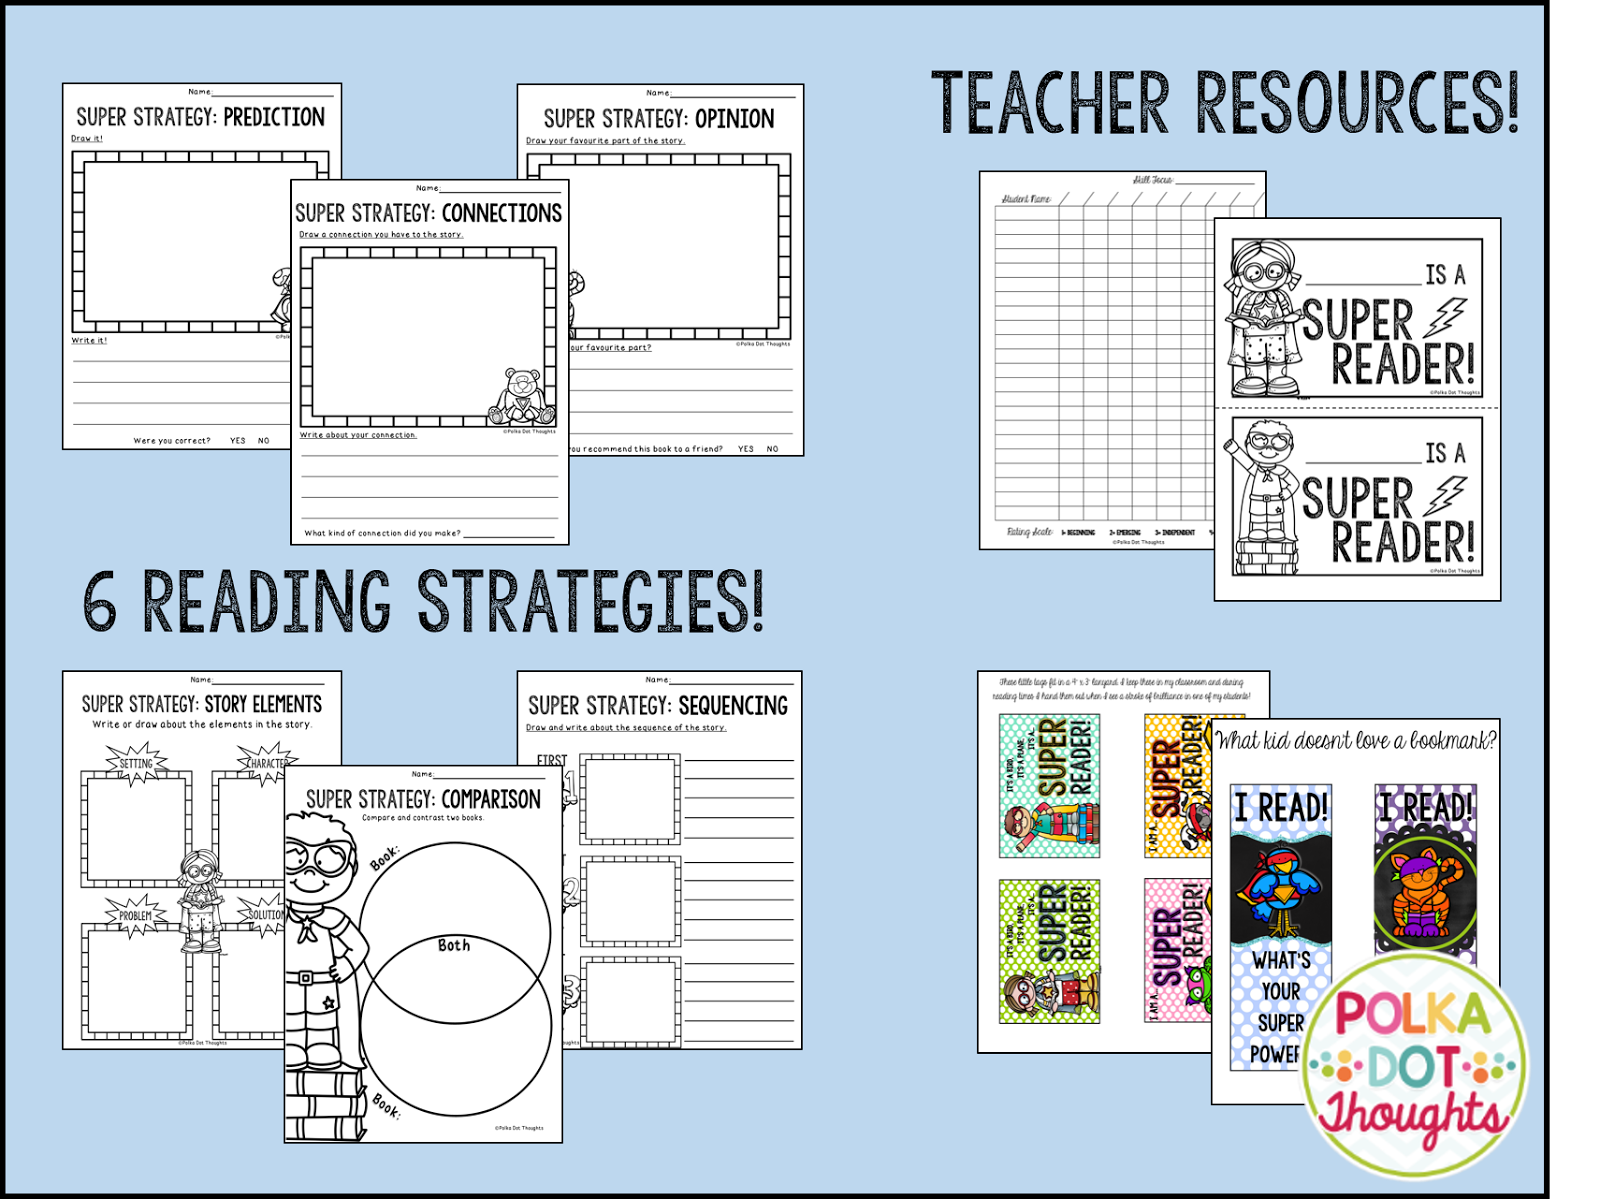 worksheet Iread Practice Worksheets polka dot thoughts i know that worksheets are a dime dozen so wanted to include some great teacher resources as well there is student log for your marks book